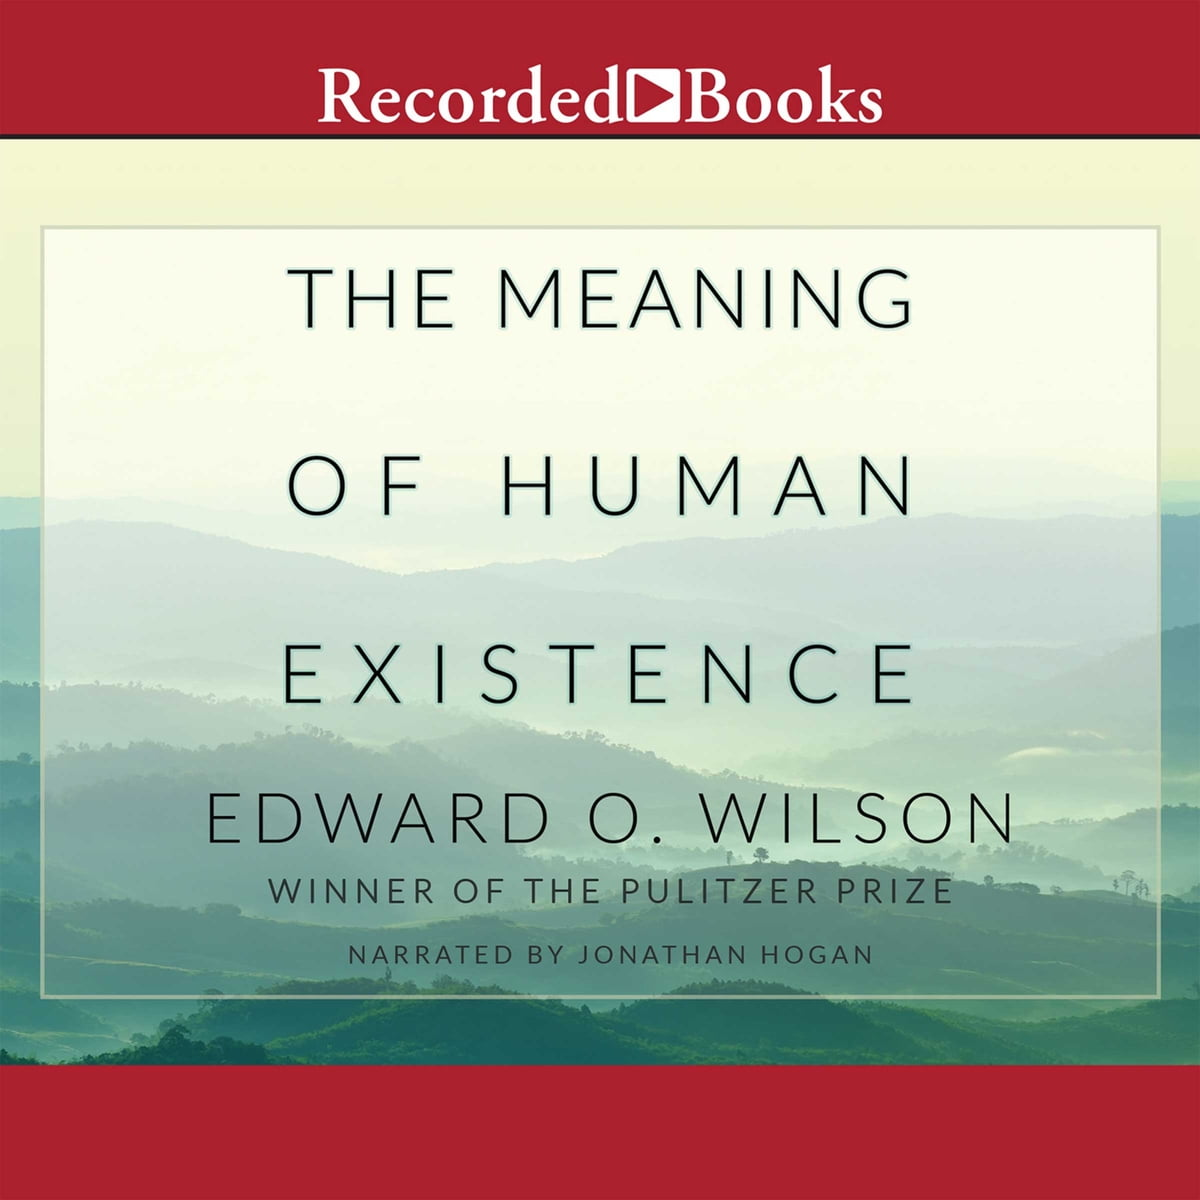 Image result for edward o wilson meaning of human existence